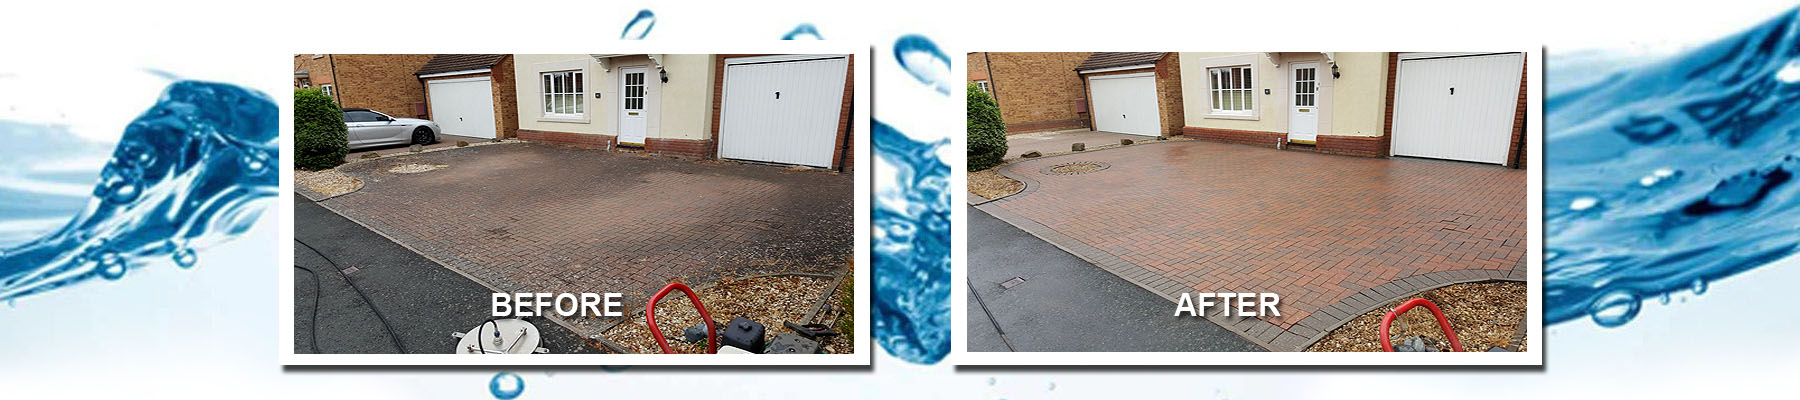 BLOCK-PAVED-DRIVEWAY-CLEANING